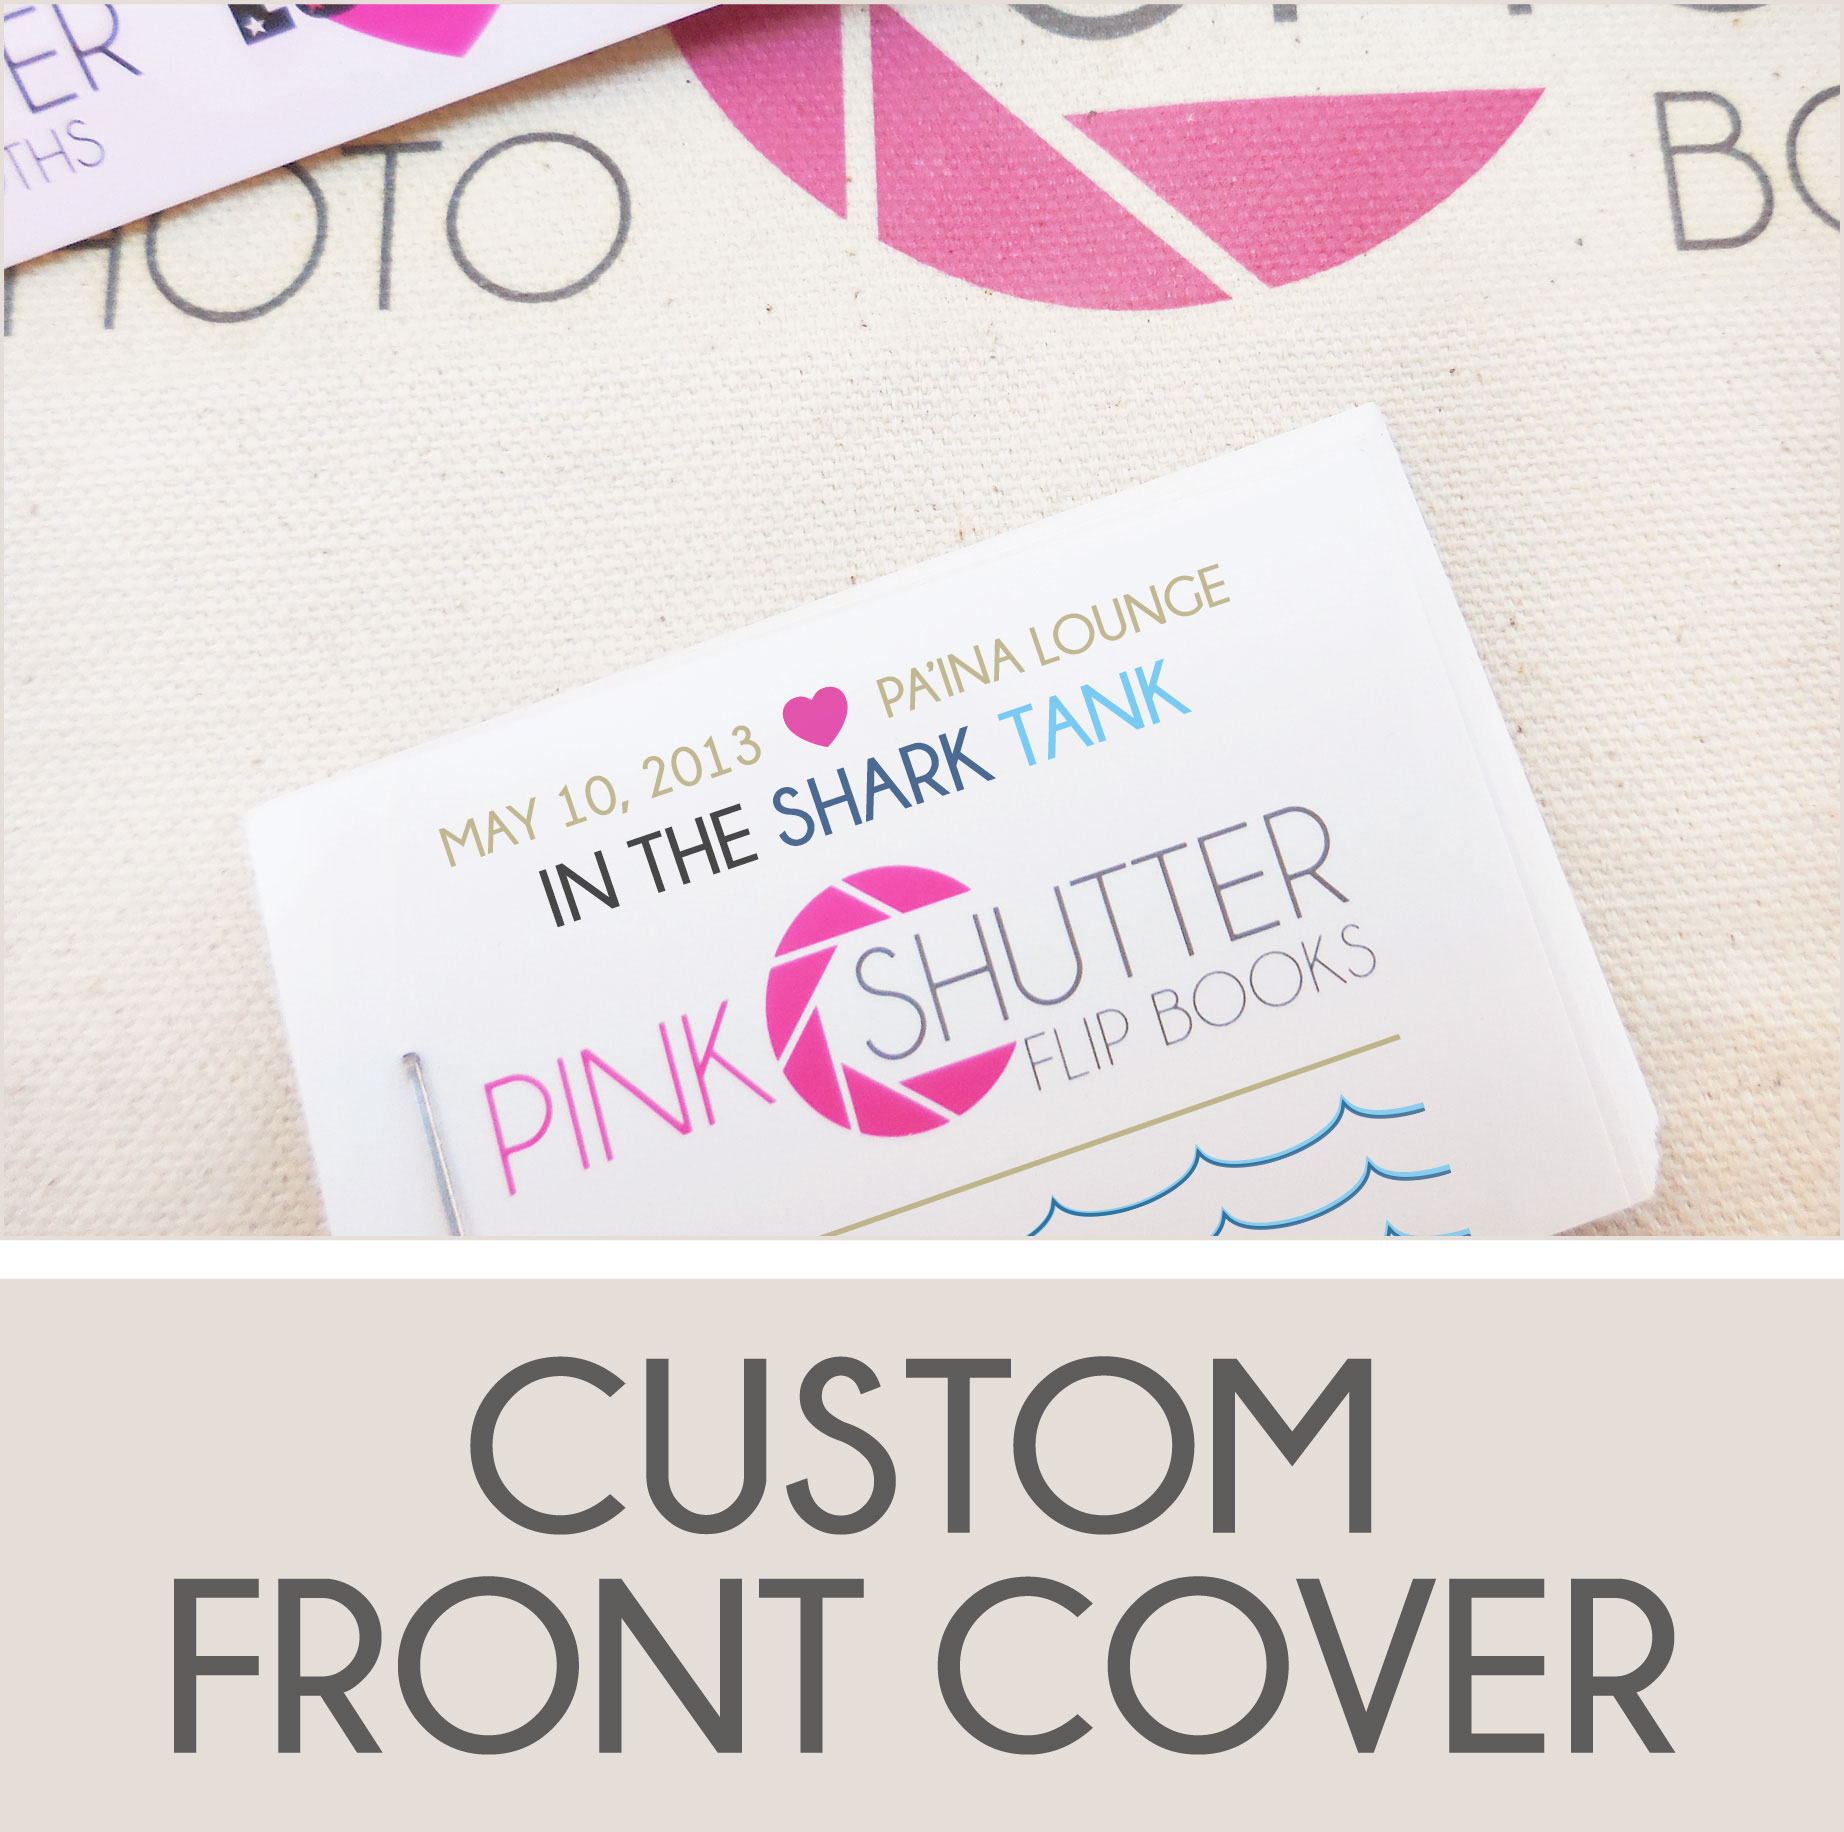 Match Your Flip Book Cover to Your Event Color, Theme, Style